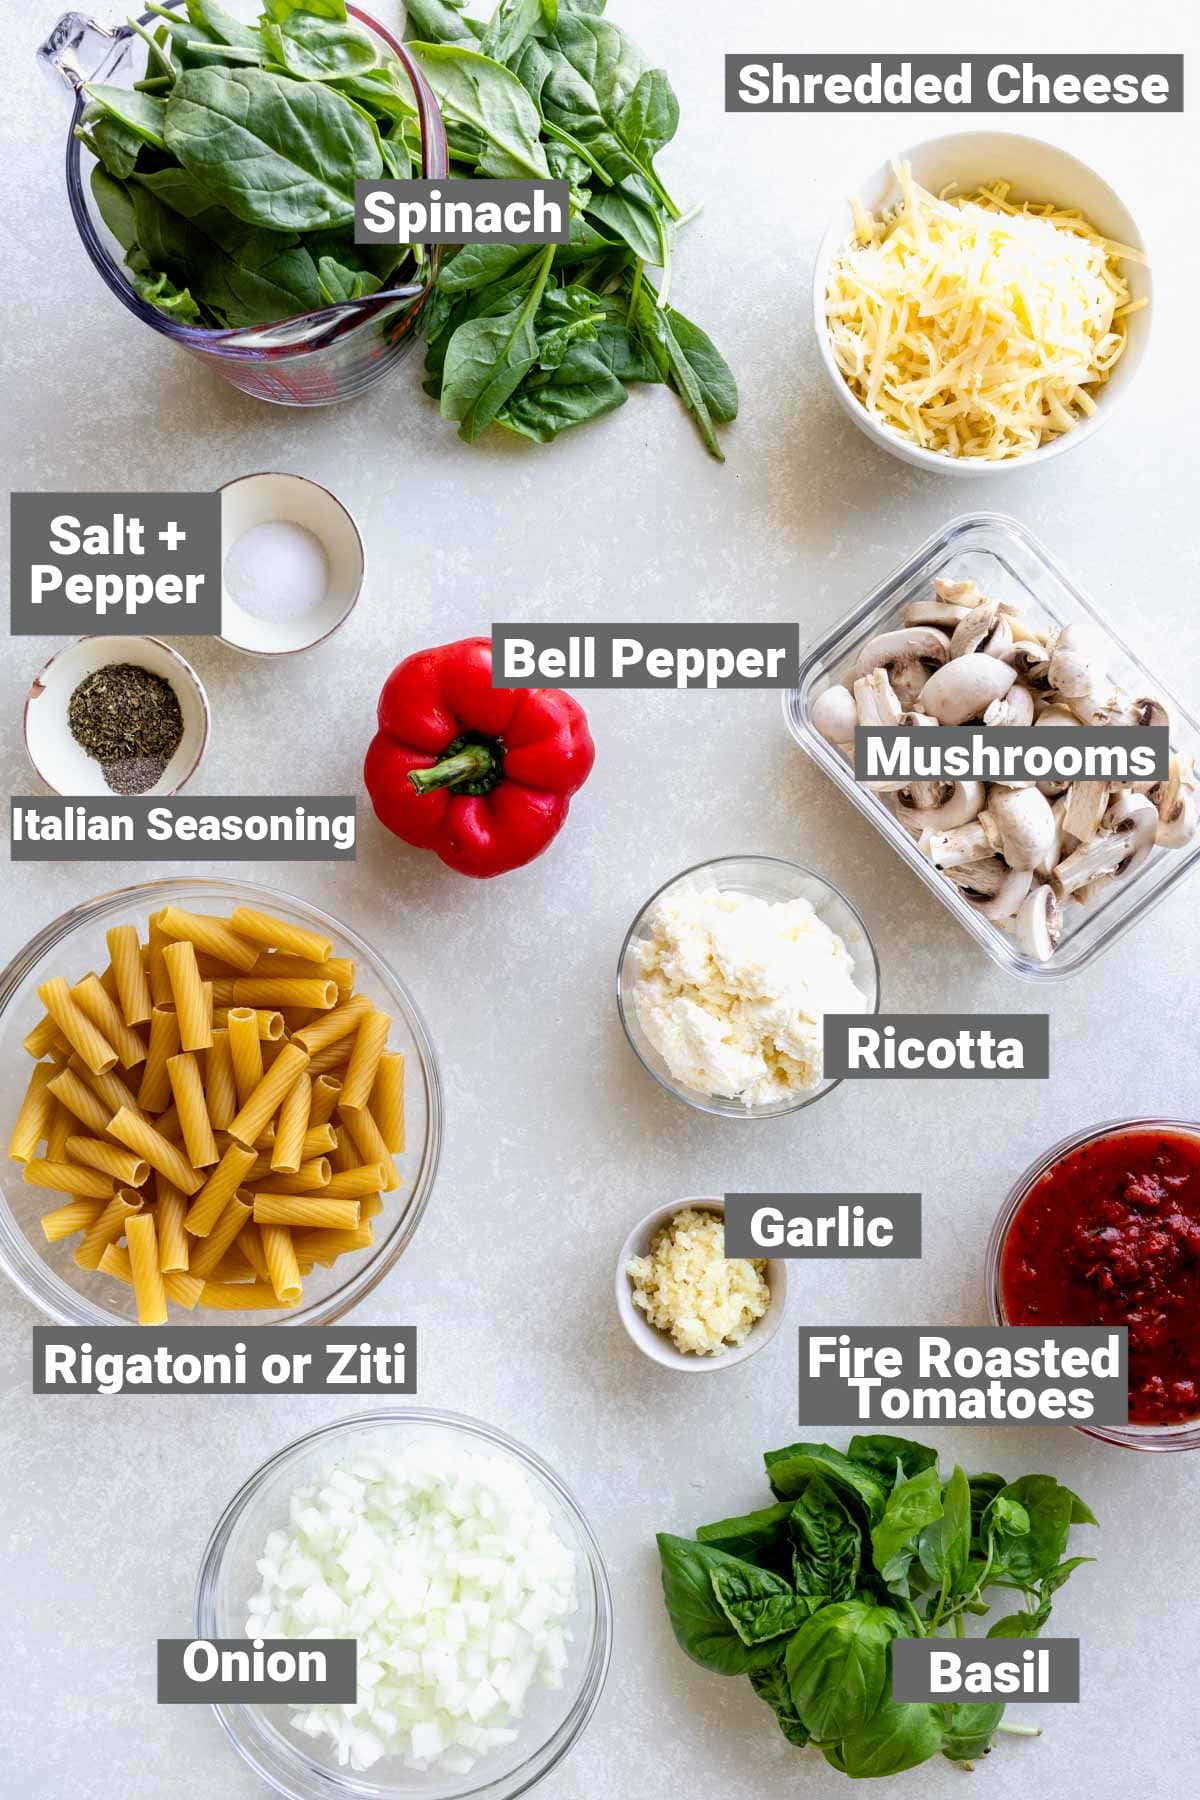 the ingredients with text overlay